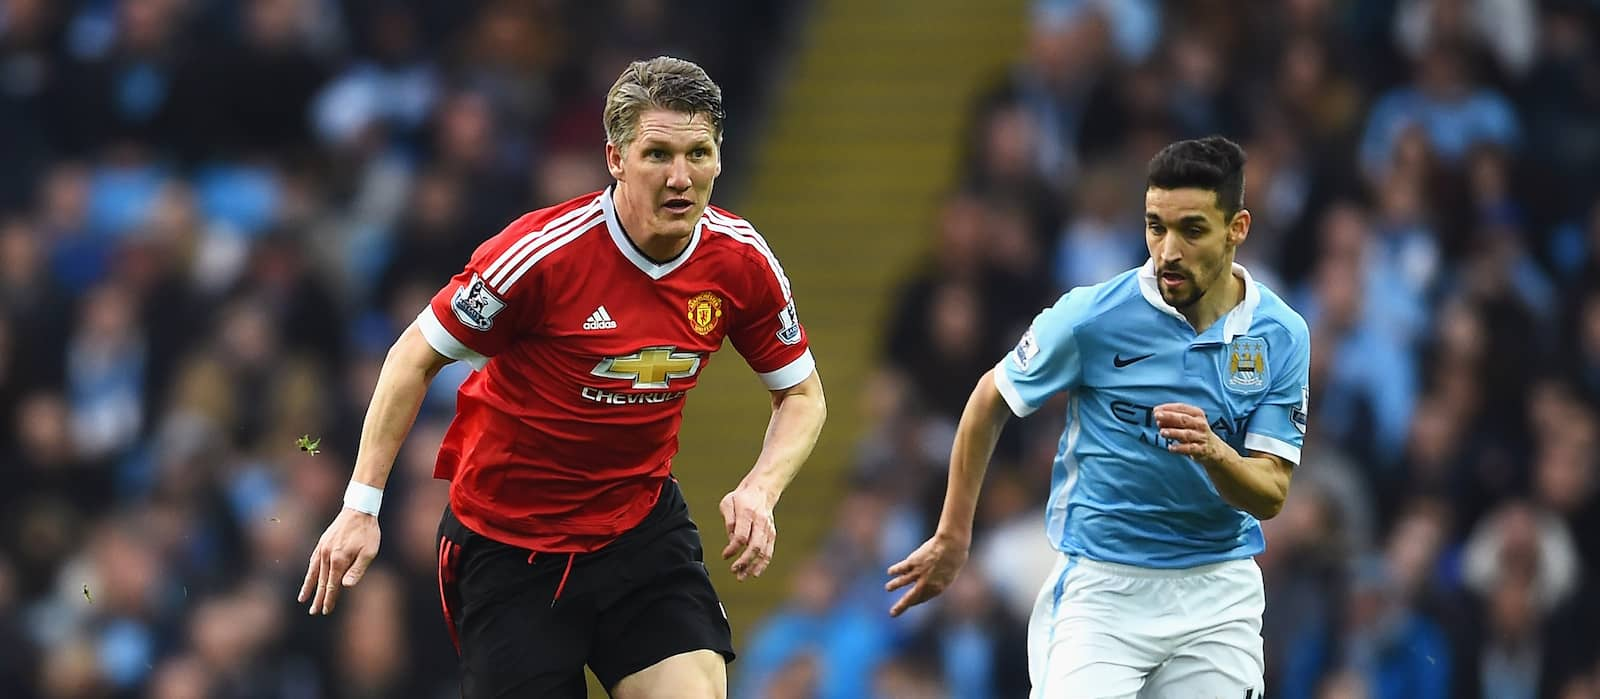 Paul Scholes urges Jose Mourinho to play Bastian Schweinsteiger at Man United